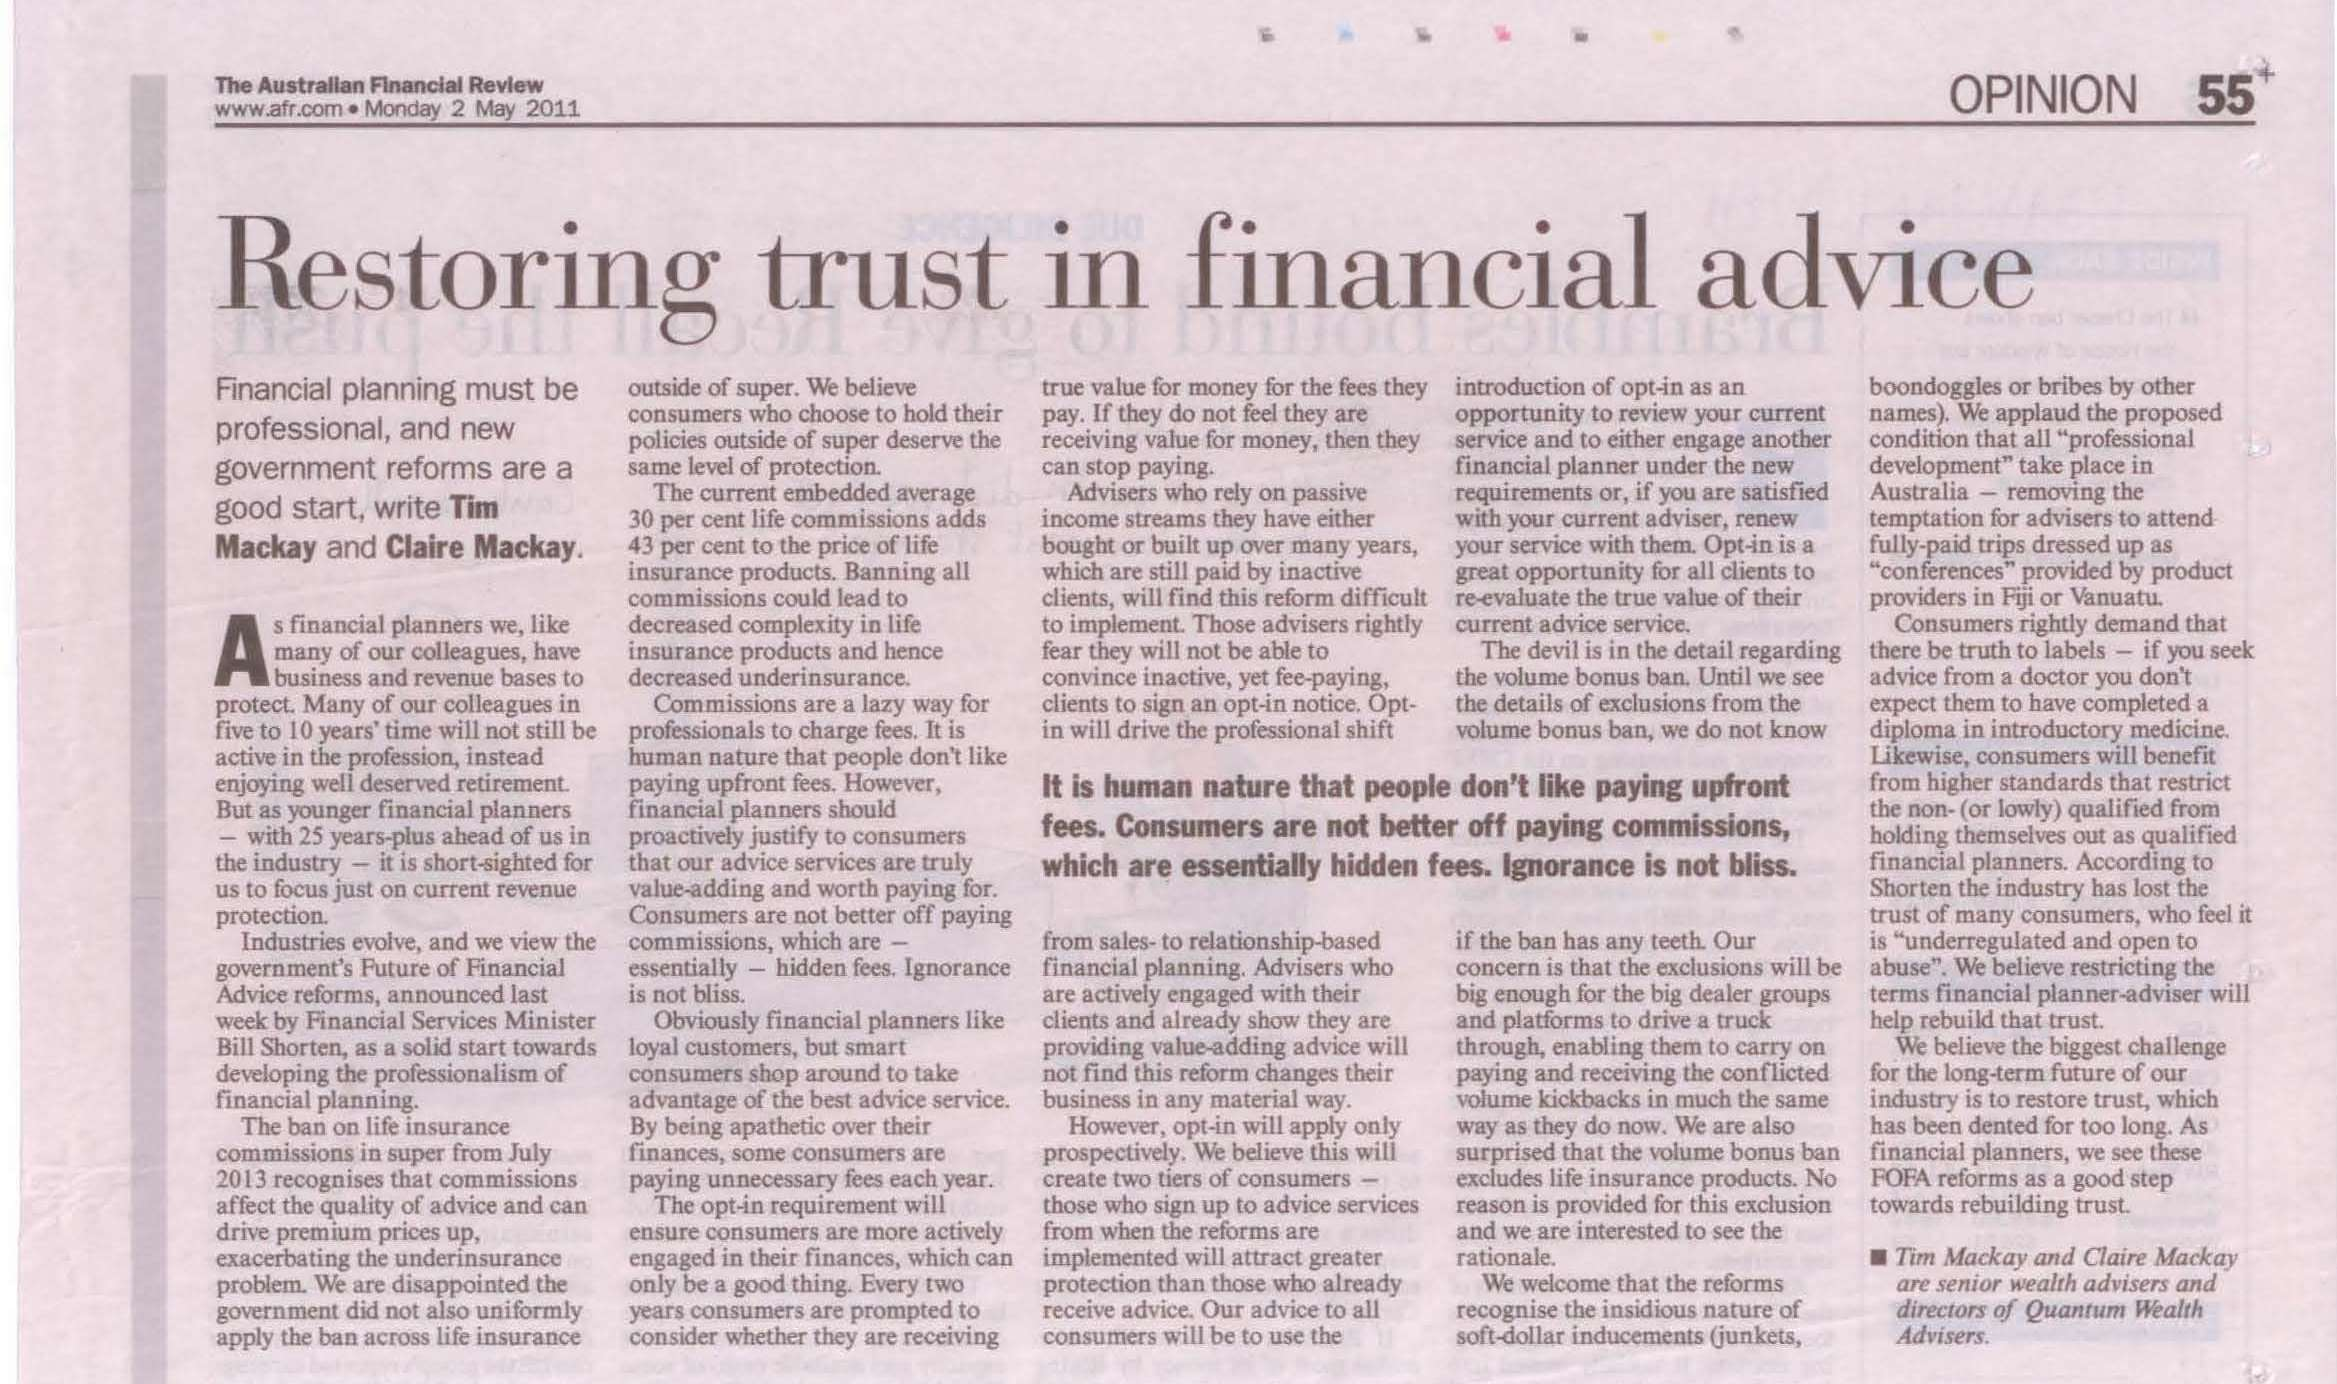 Professionalism in financial planning